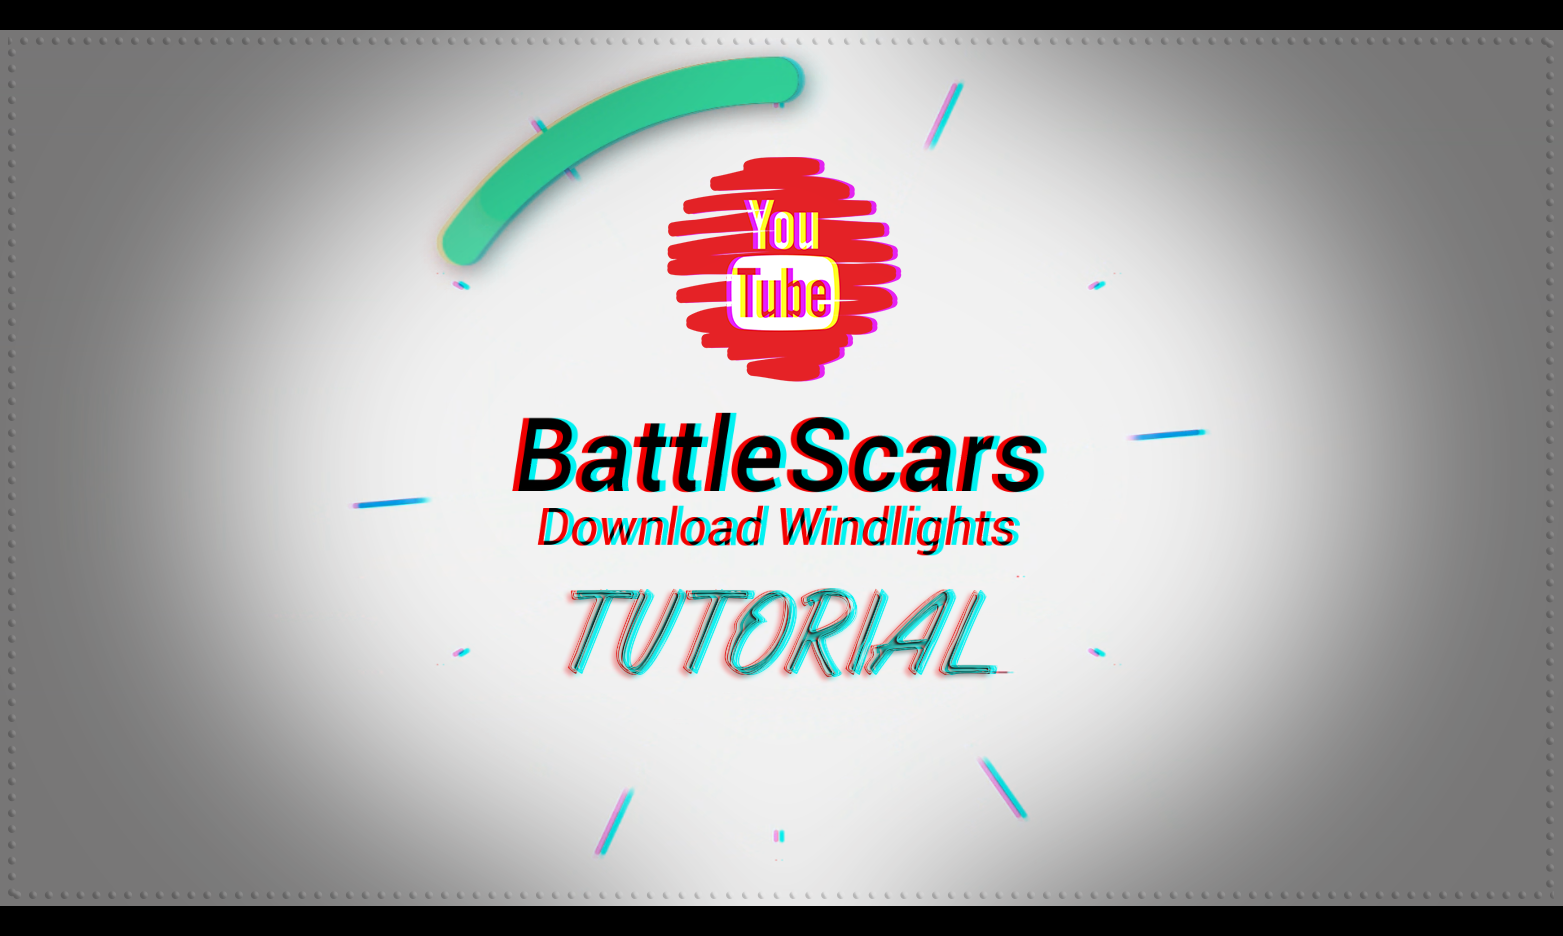 How to download Windlights BattleScars? (NEW method 2018)